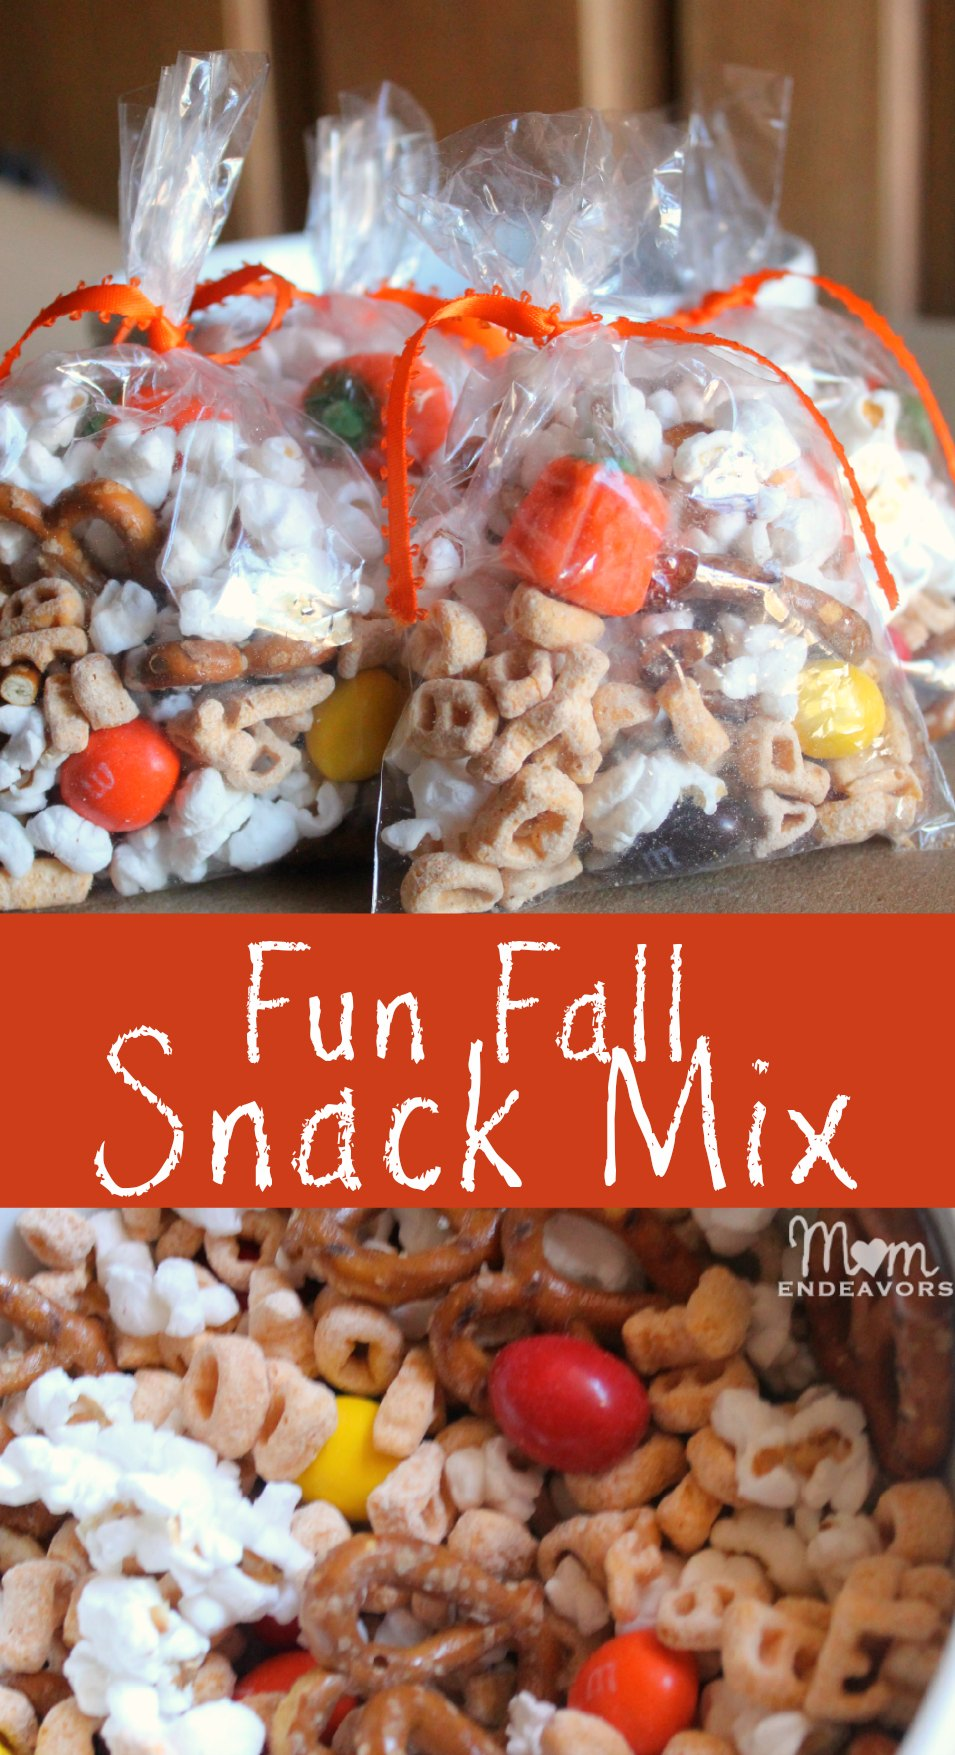 Fun Fall Snack Mix